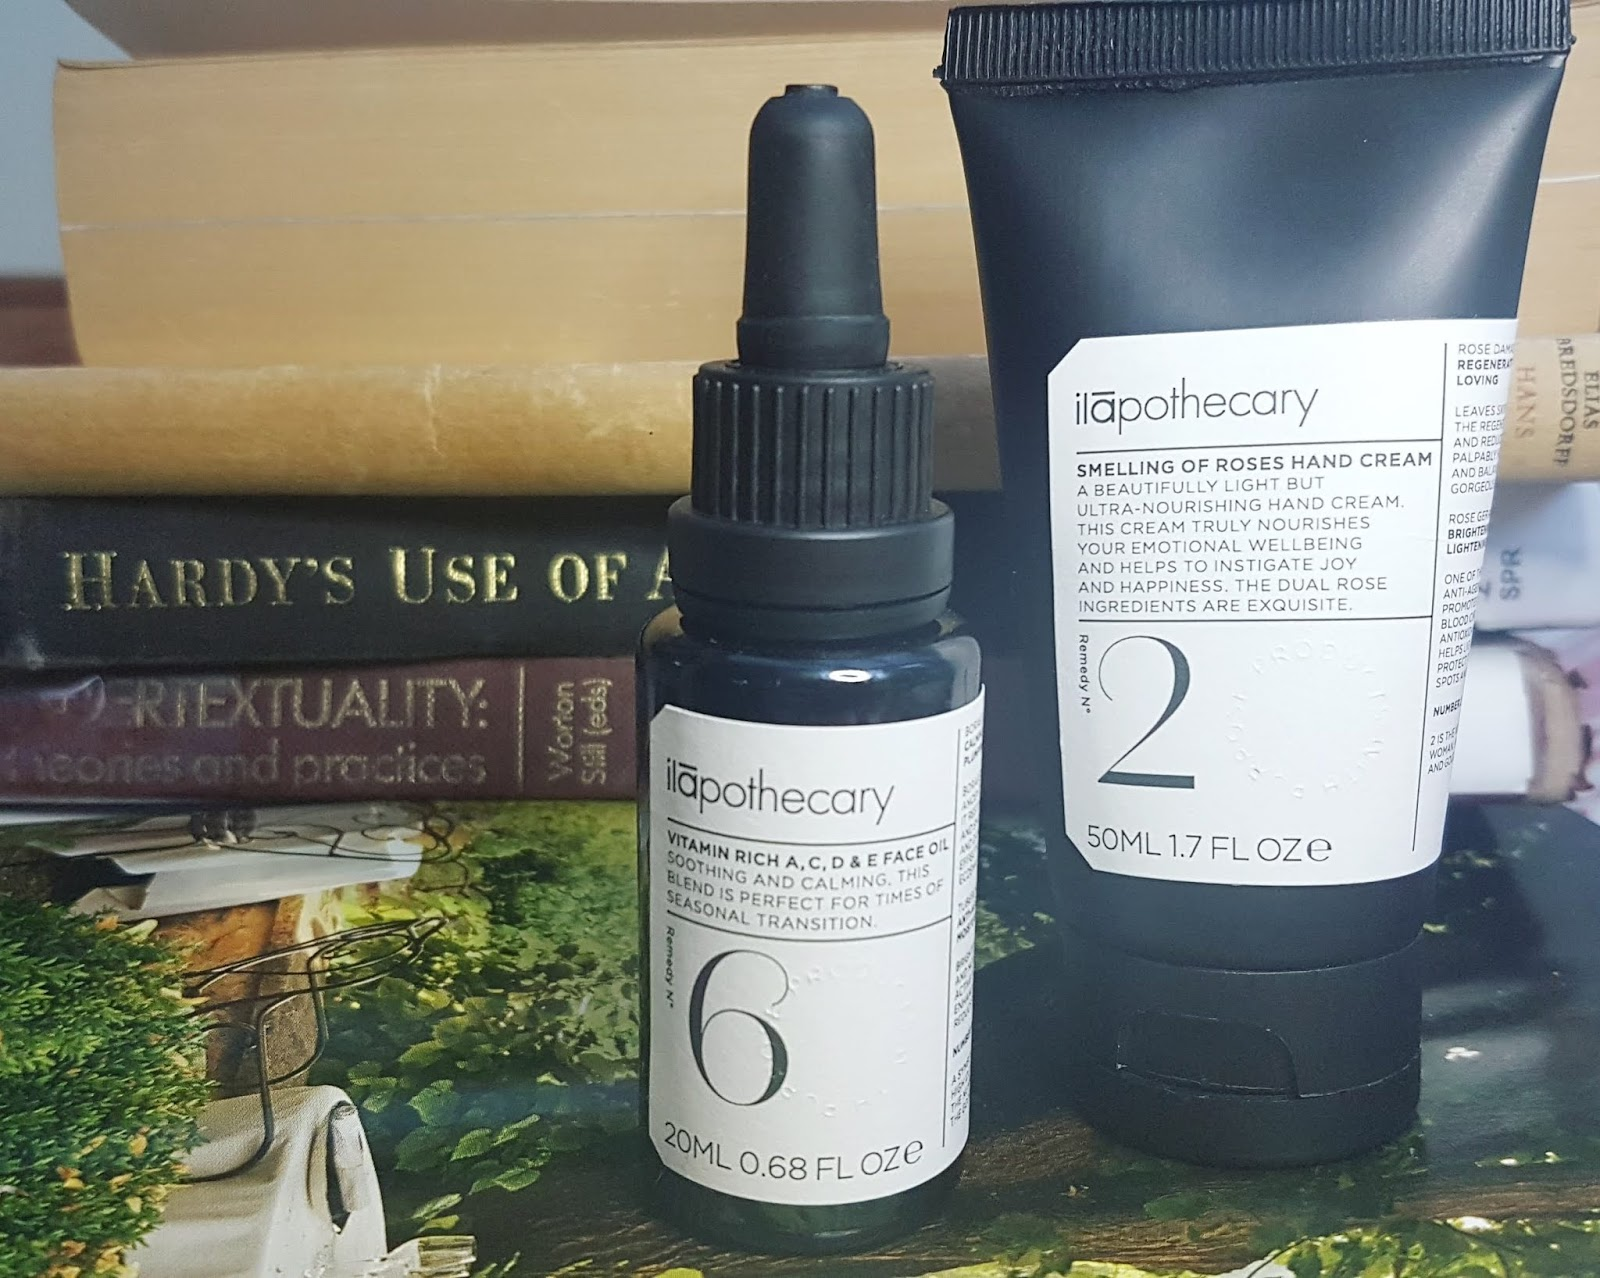 Ilapothecary Remedy No 6 + Remedy No 2